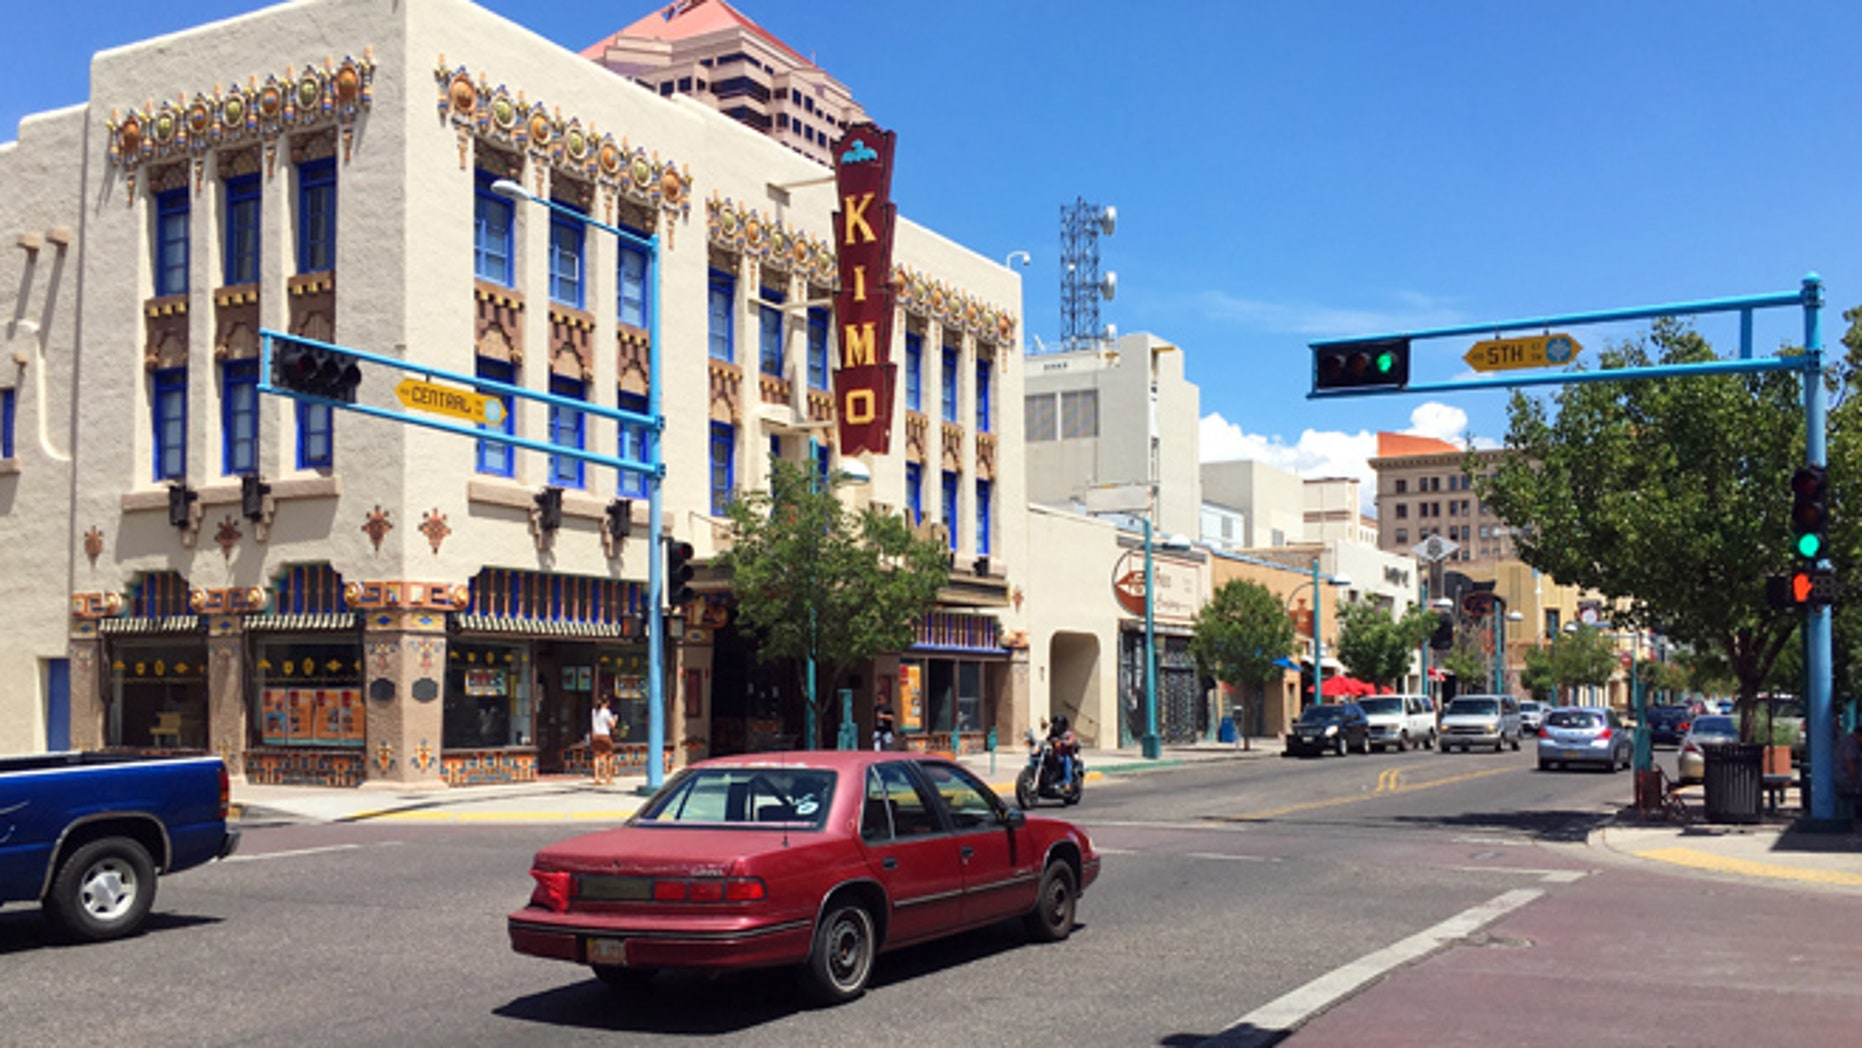 The Kimo Theater is seen on historic Route 66 in downtown Albuquerque, N.M., Monday, Aug. 1, 2016.